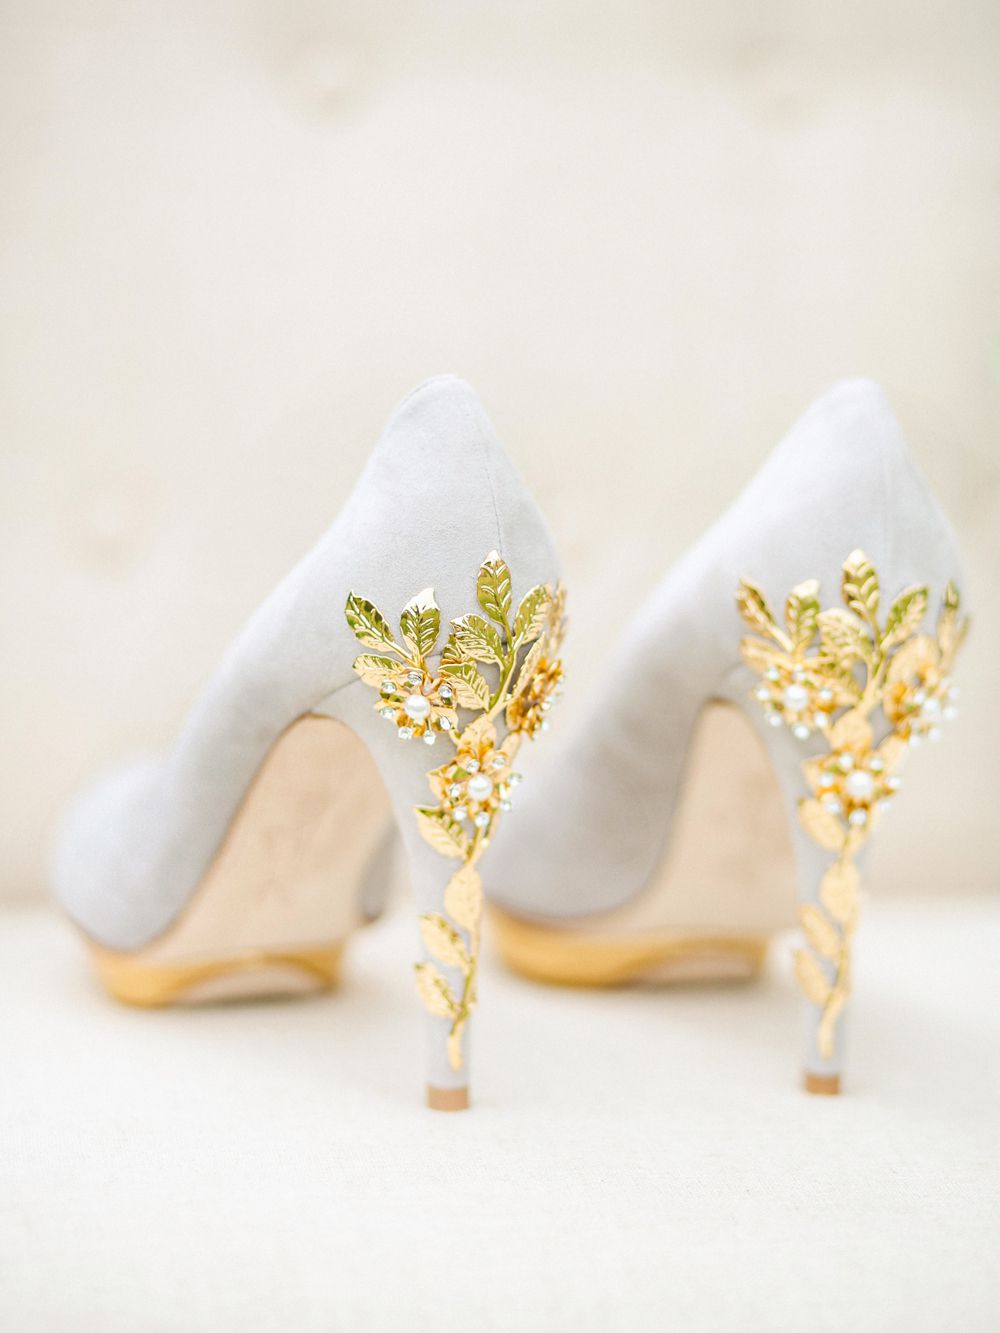 Pale gray shoes with gold-plated heels.